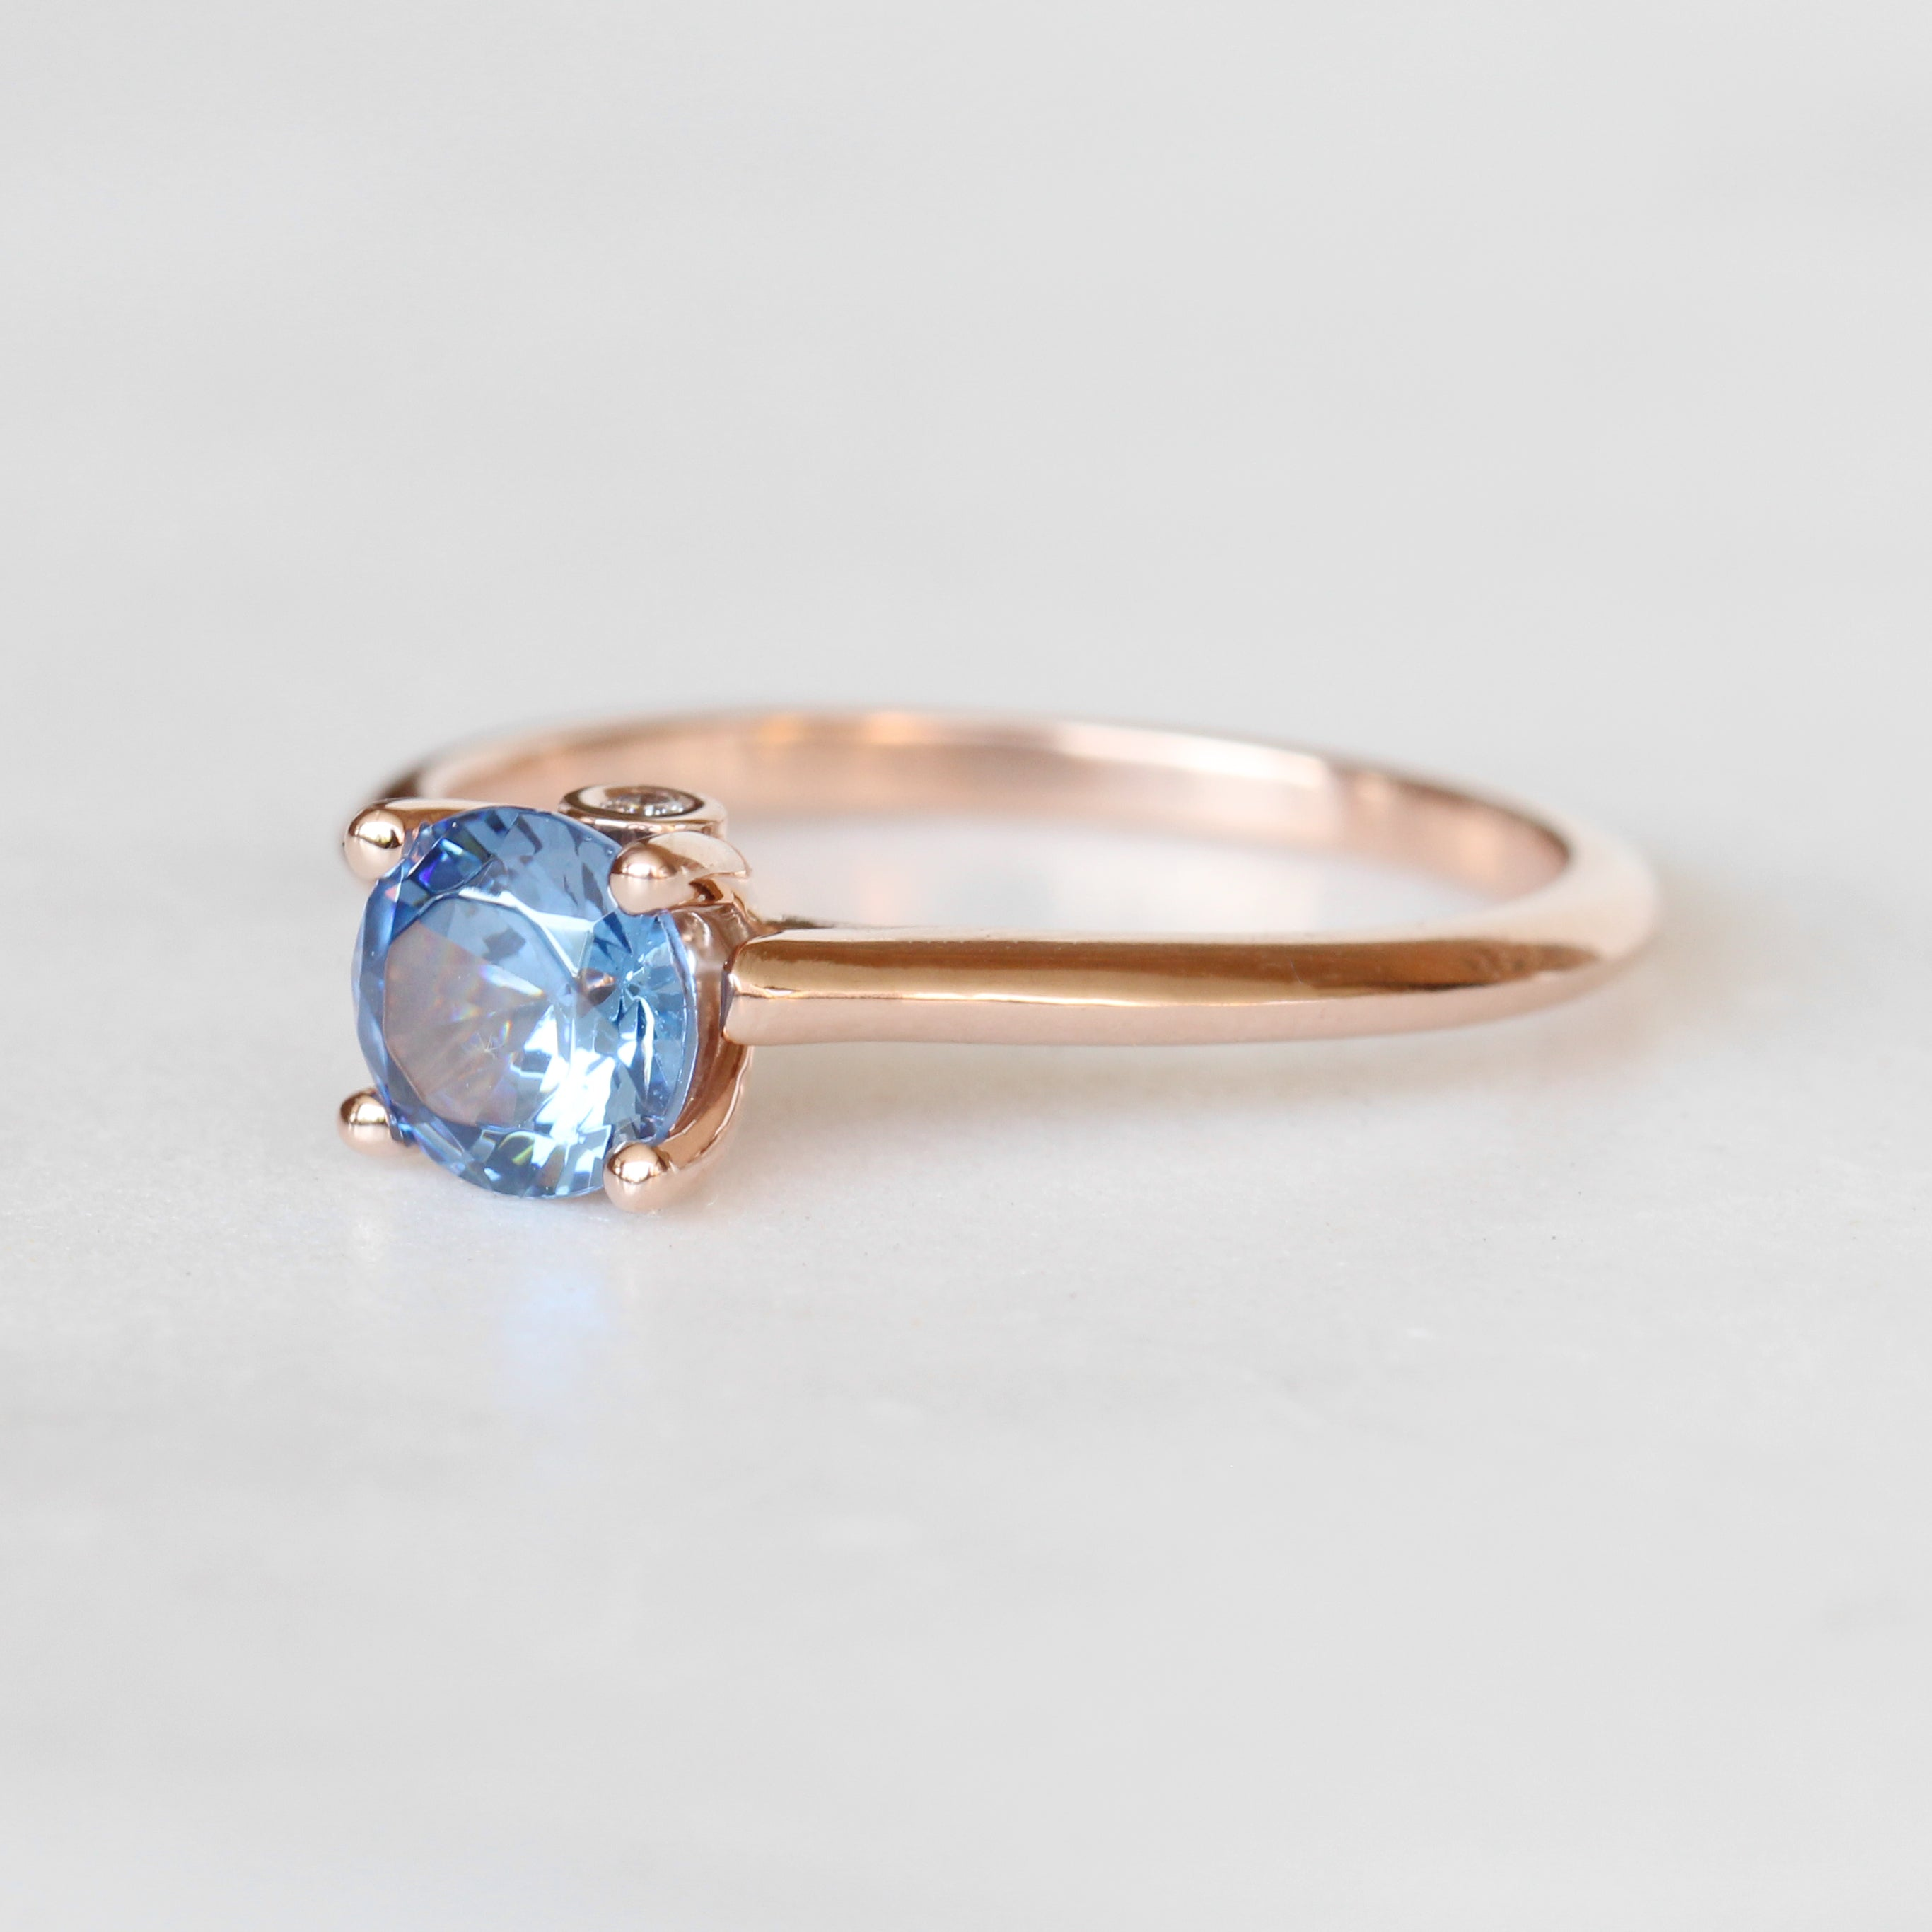 Eliza Ring with 1 carat Tanzanite and 2 diamonds in 14k rose gold - ready to size and ship - Salt & Pepper Celestial Diamond Engagement Rings and Wedding Bands  by Midwinter Co.